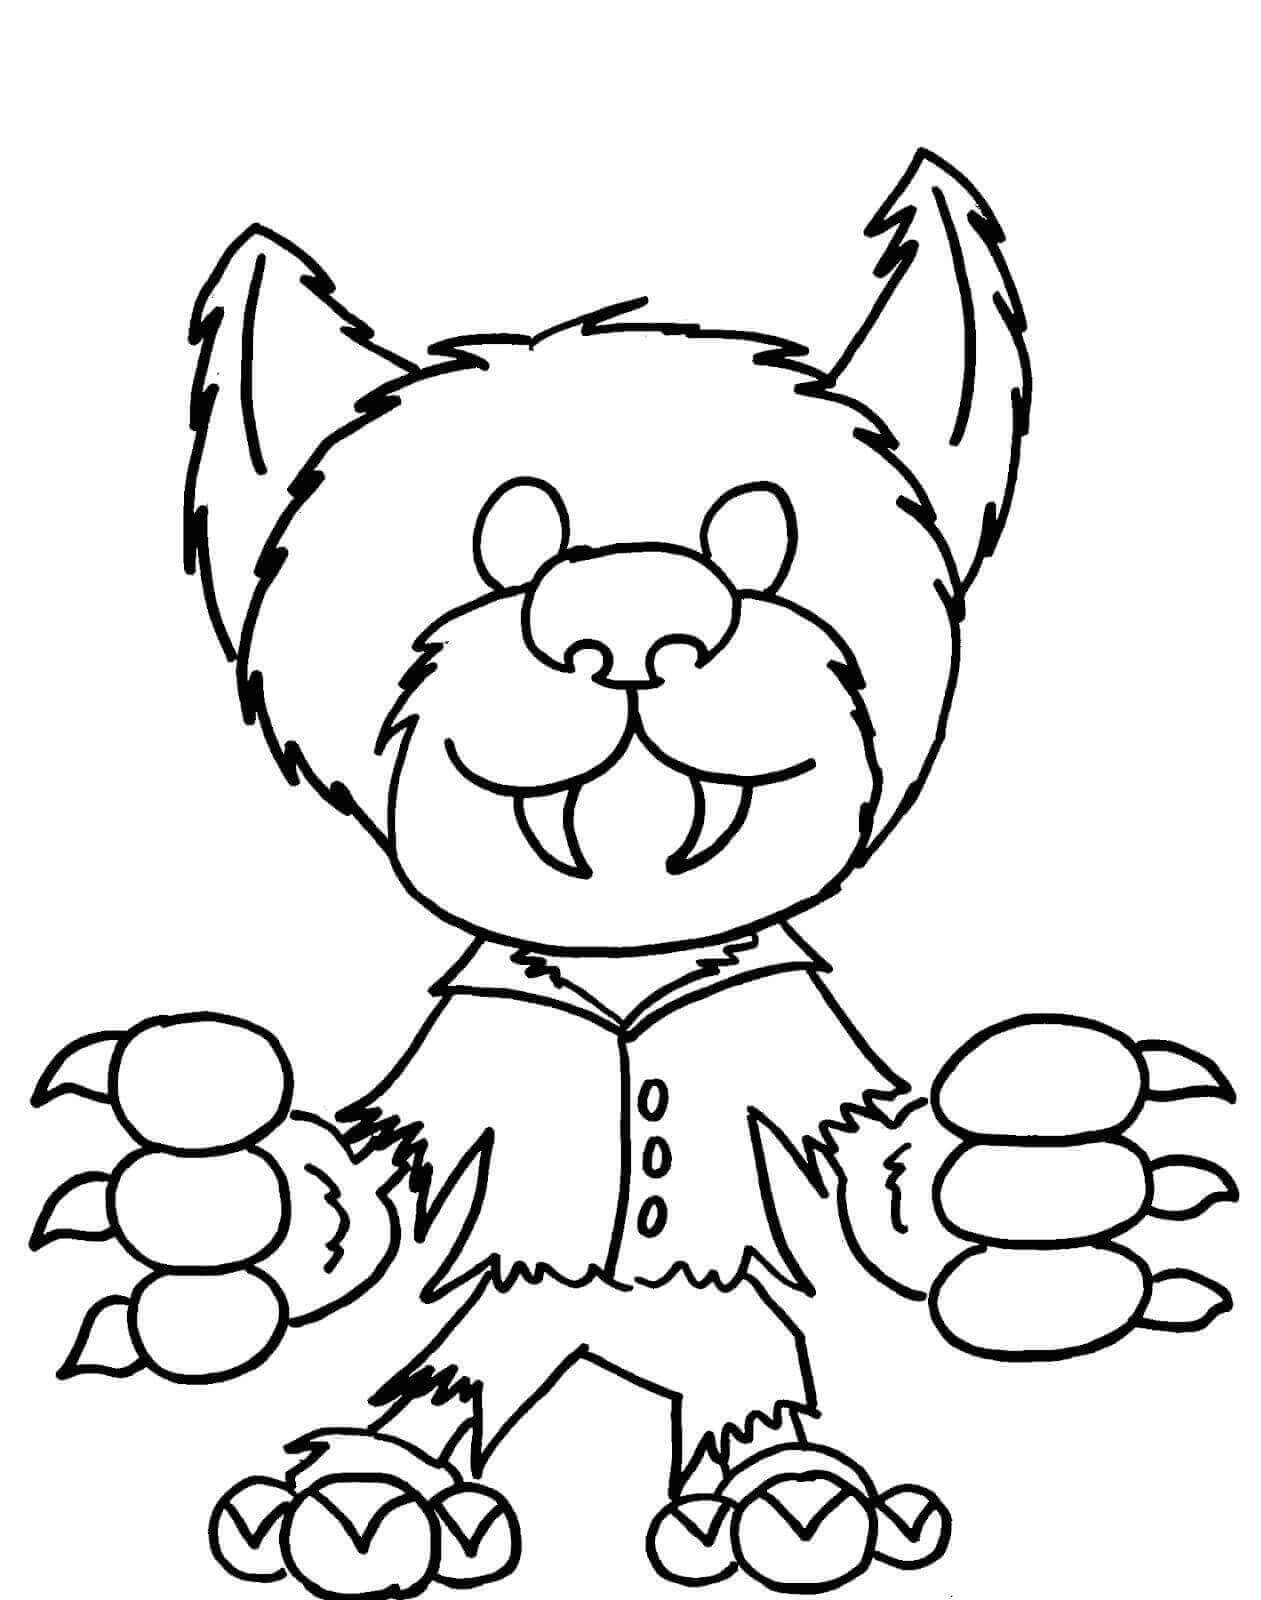 Easy werewolf coloring page for kids